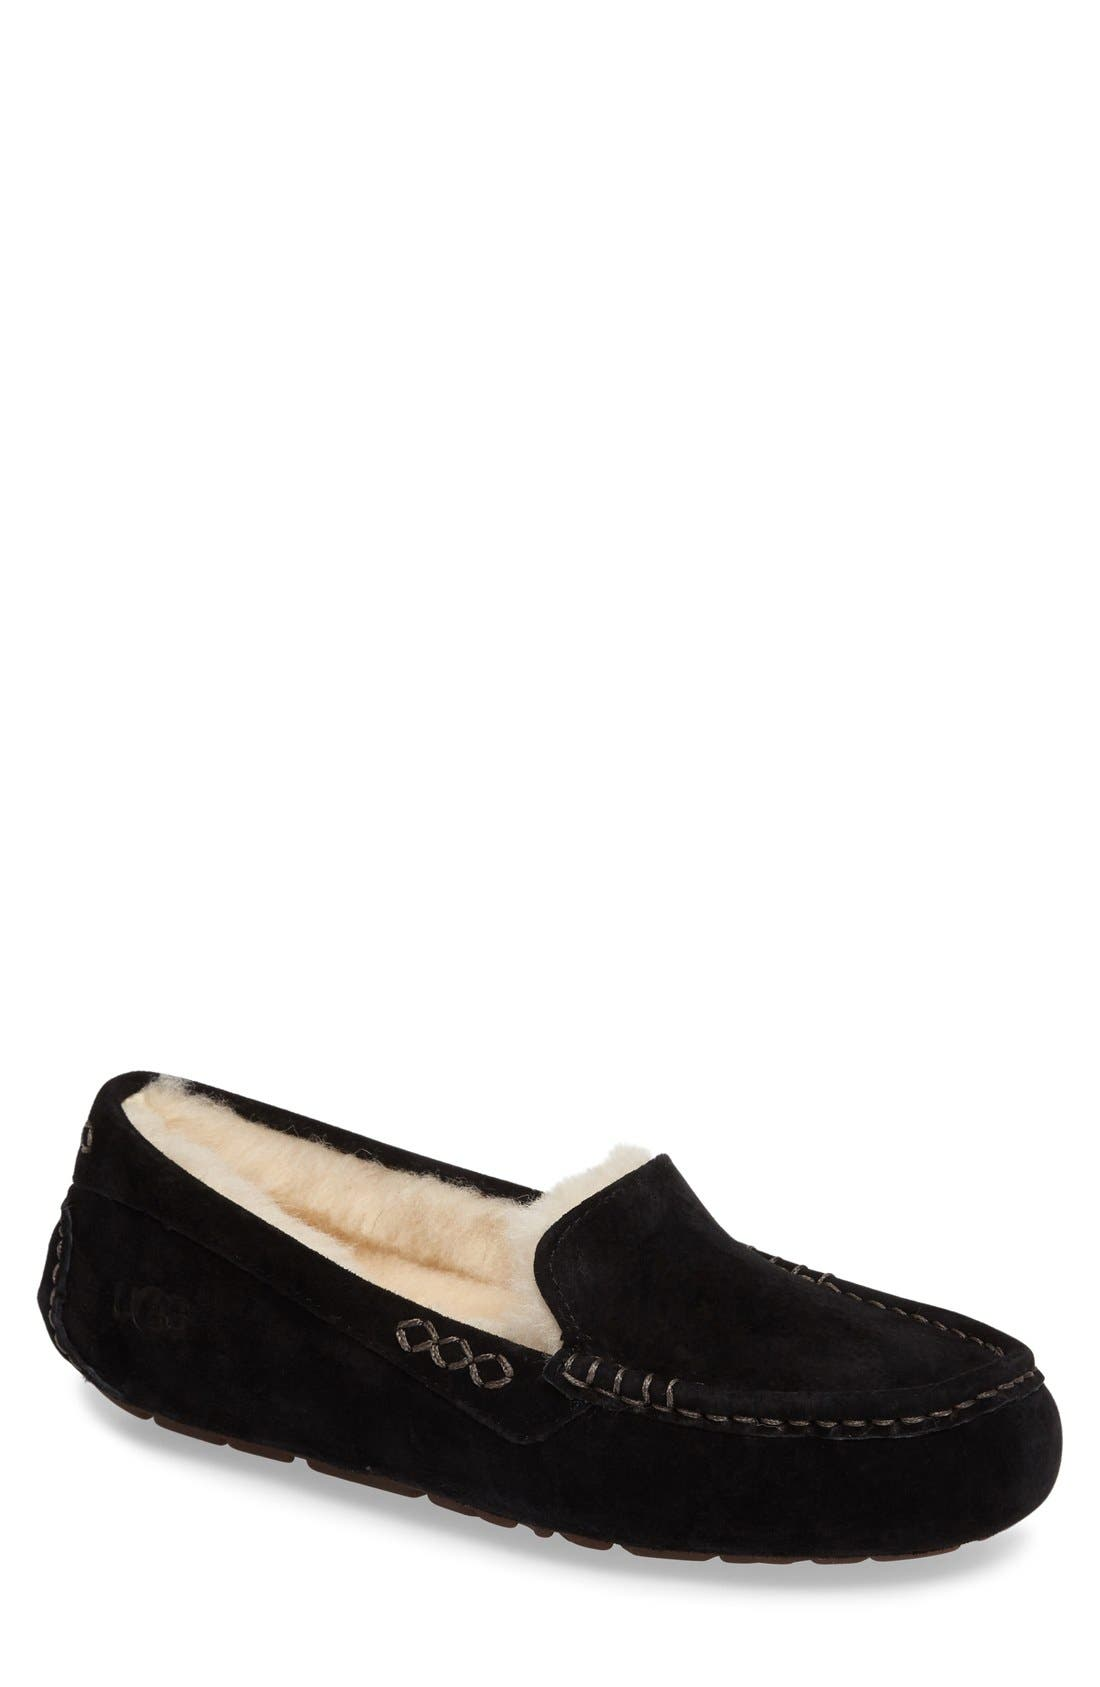 Ansley Water Resistant Slipper,                         Main,                         color, Black